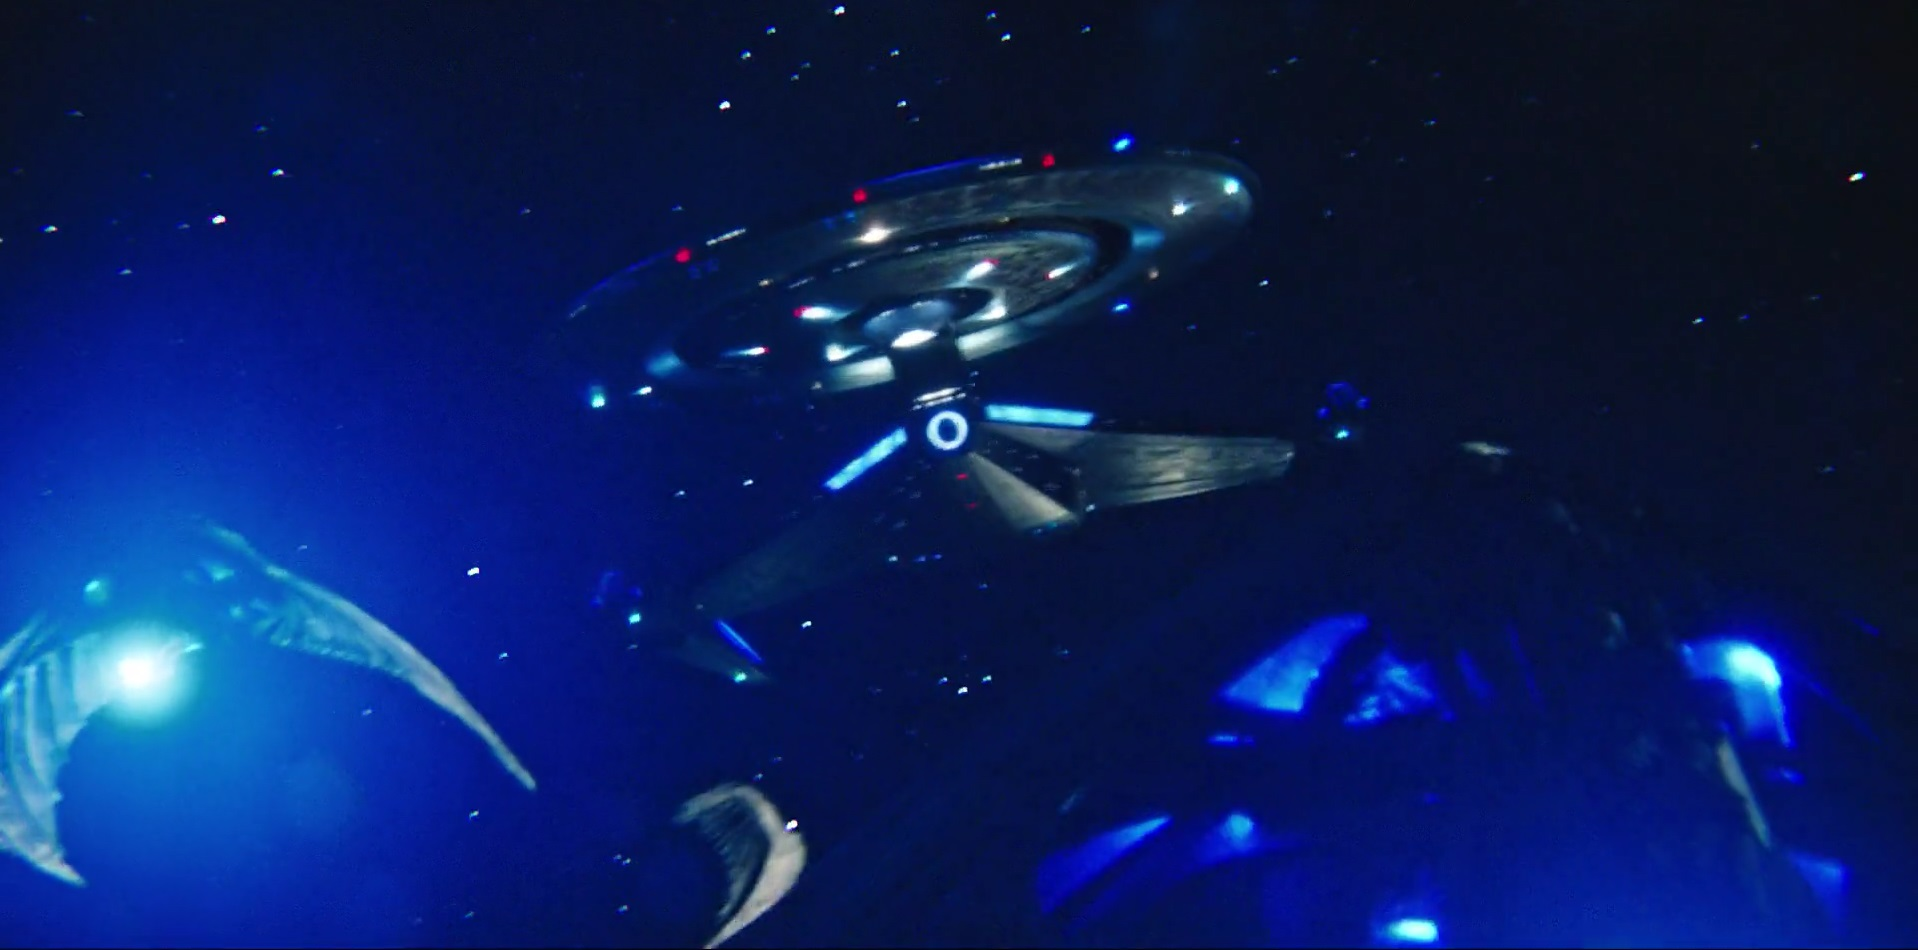 REVIEW Fourth Episode Of Star Trek Discovery Feels Like Classic Trek And More